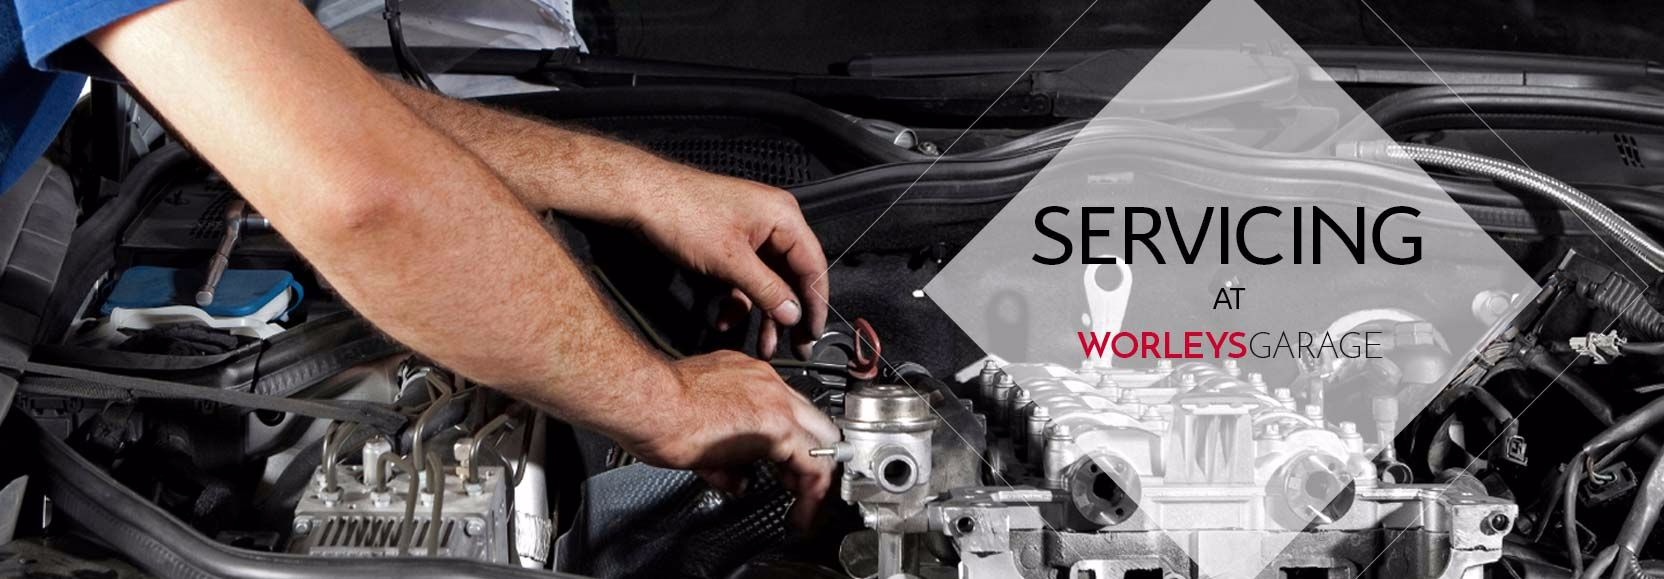 Book a Service & MOT at Worleys Garage in Buckinghamshire